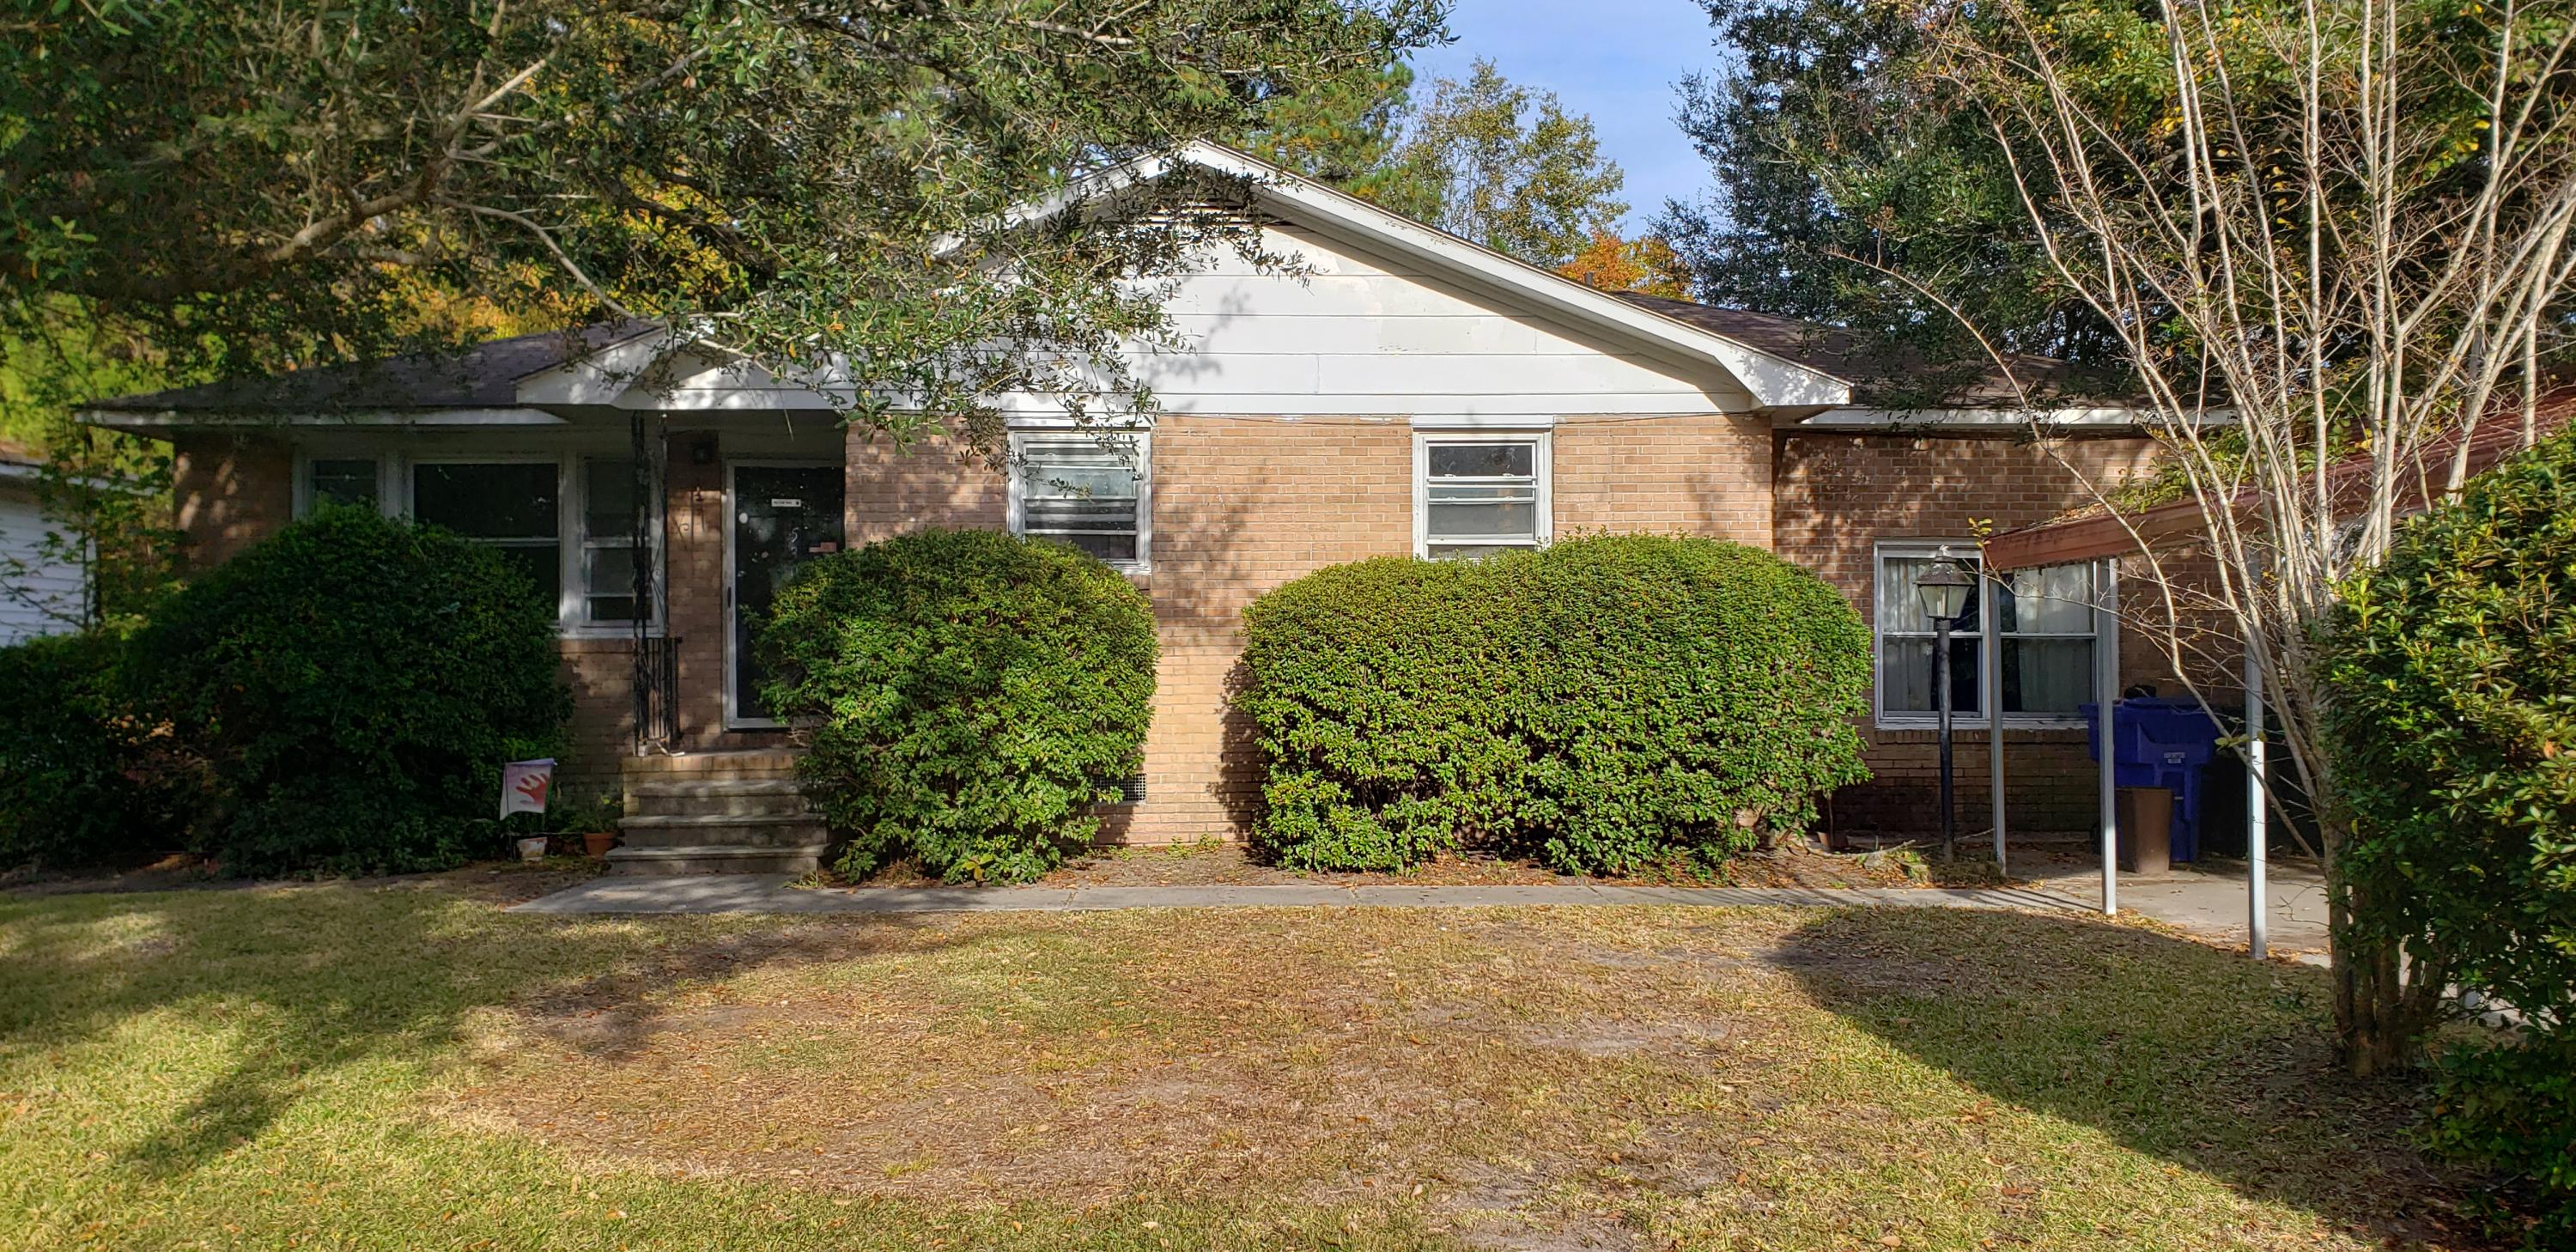 5302 Kirshtein Street North Charleston, Sc 29418